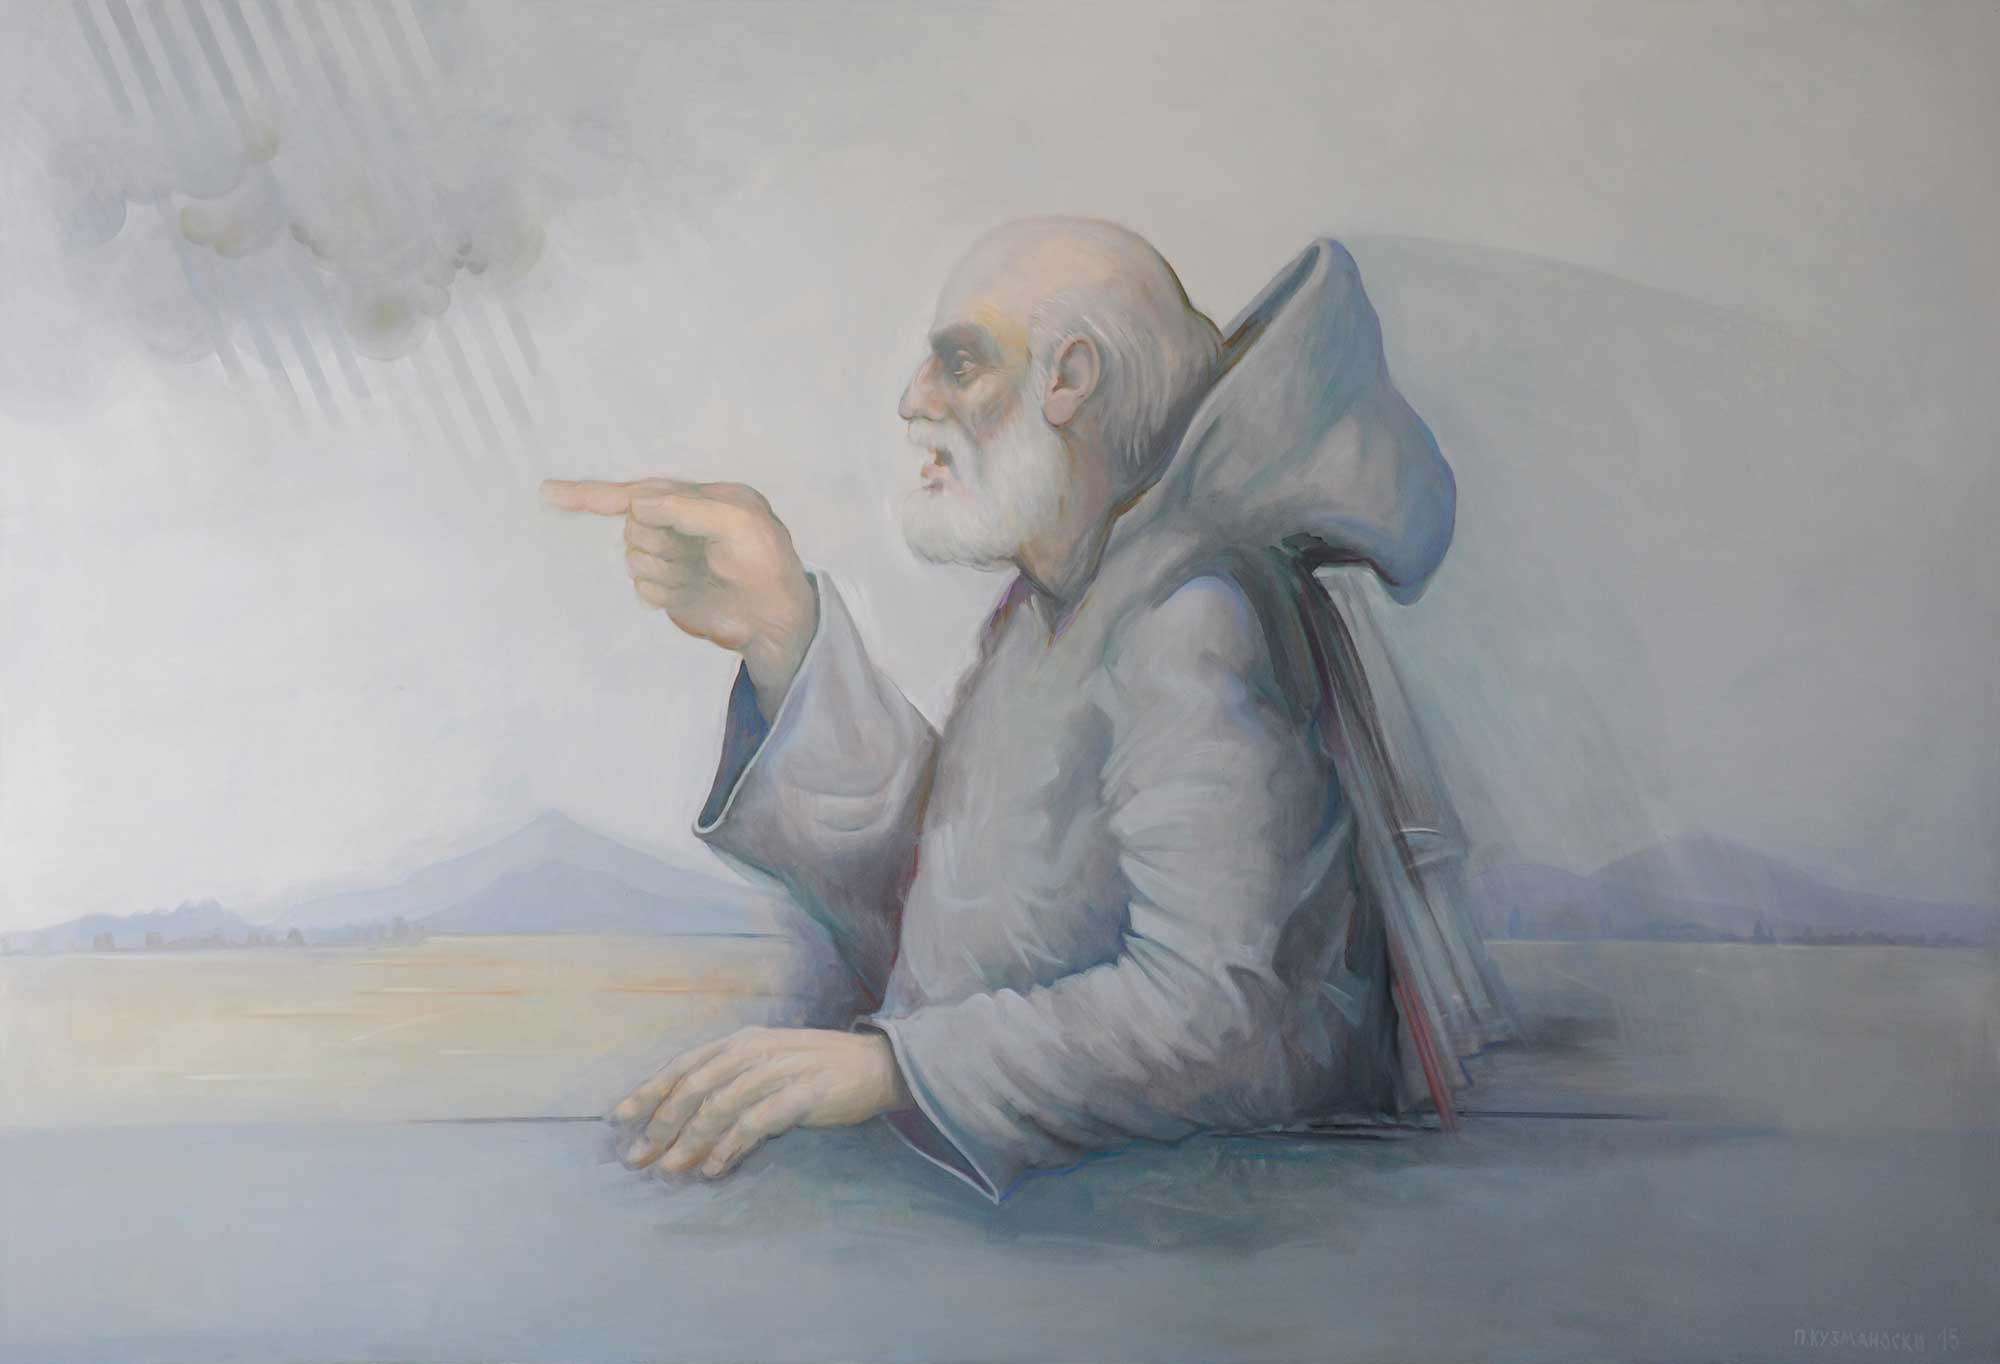 Pavle KUZMANOVSKI, Buried Witness, 2015, oil on canvas, 195 x 285 cm